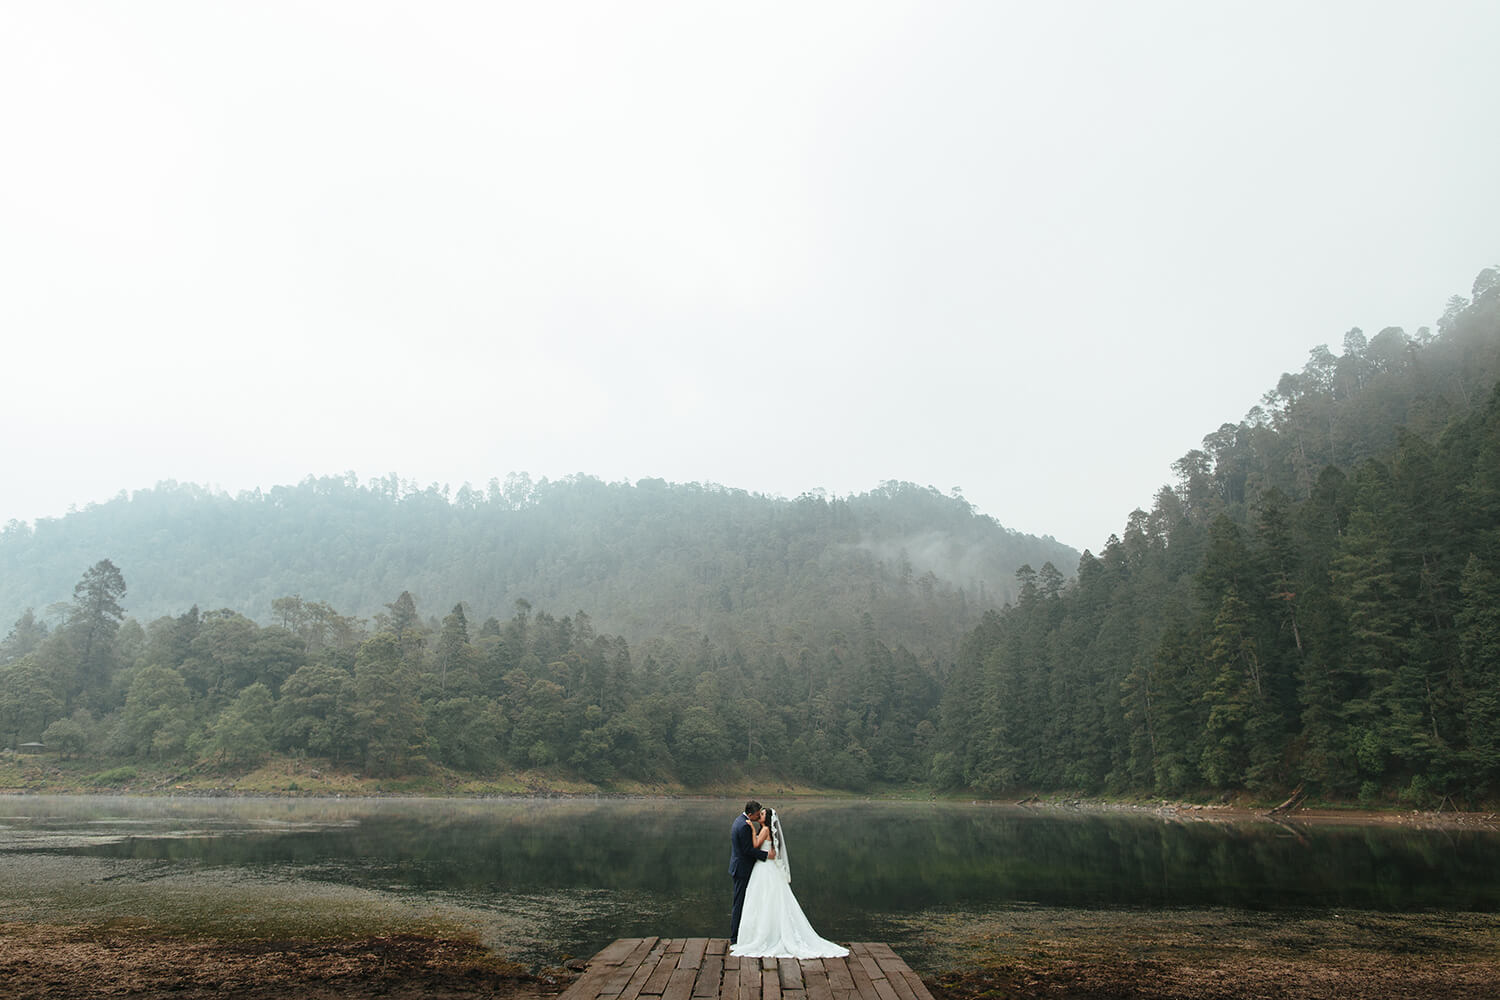 A bride and groom kissing on a dock